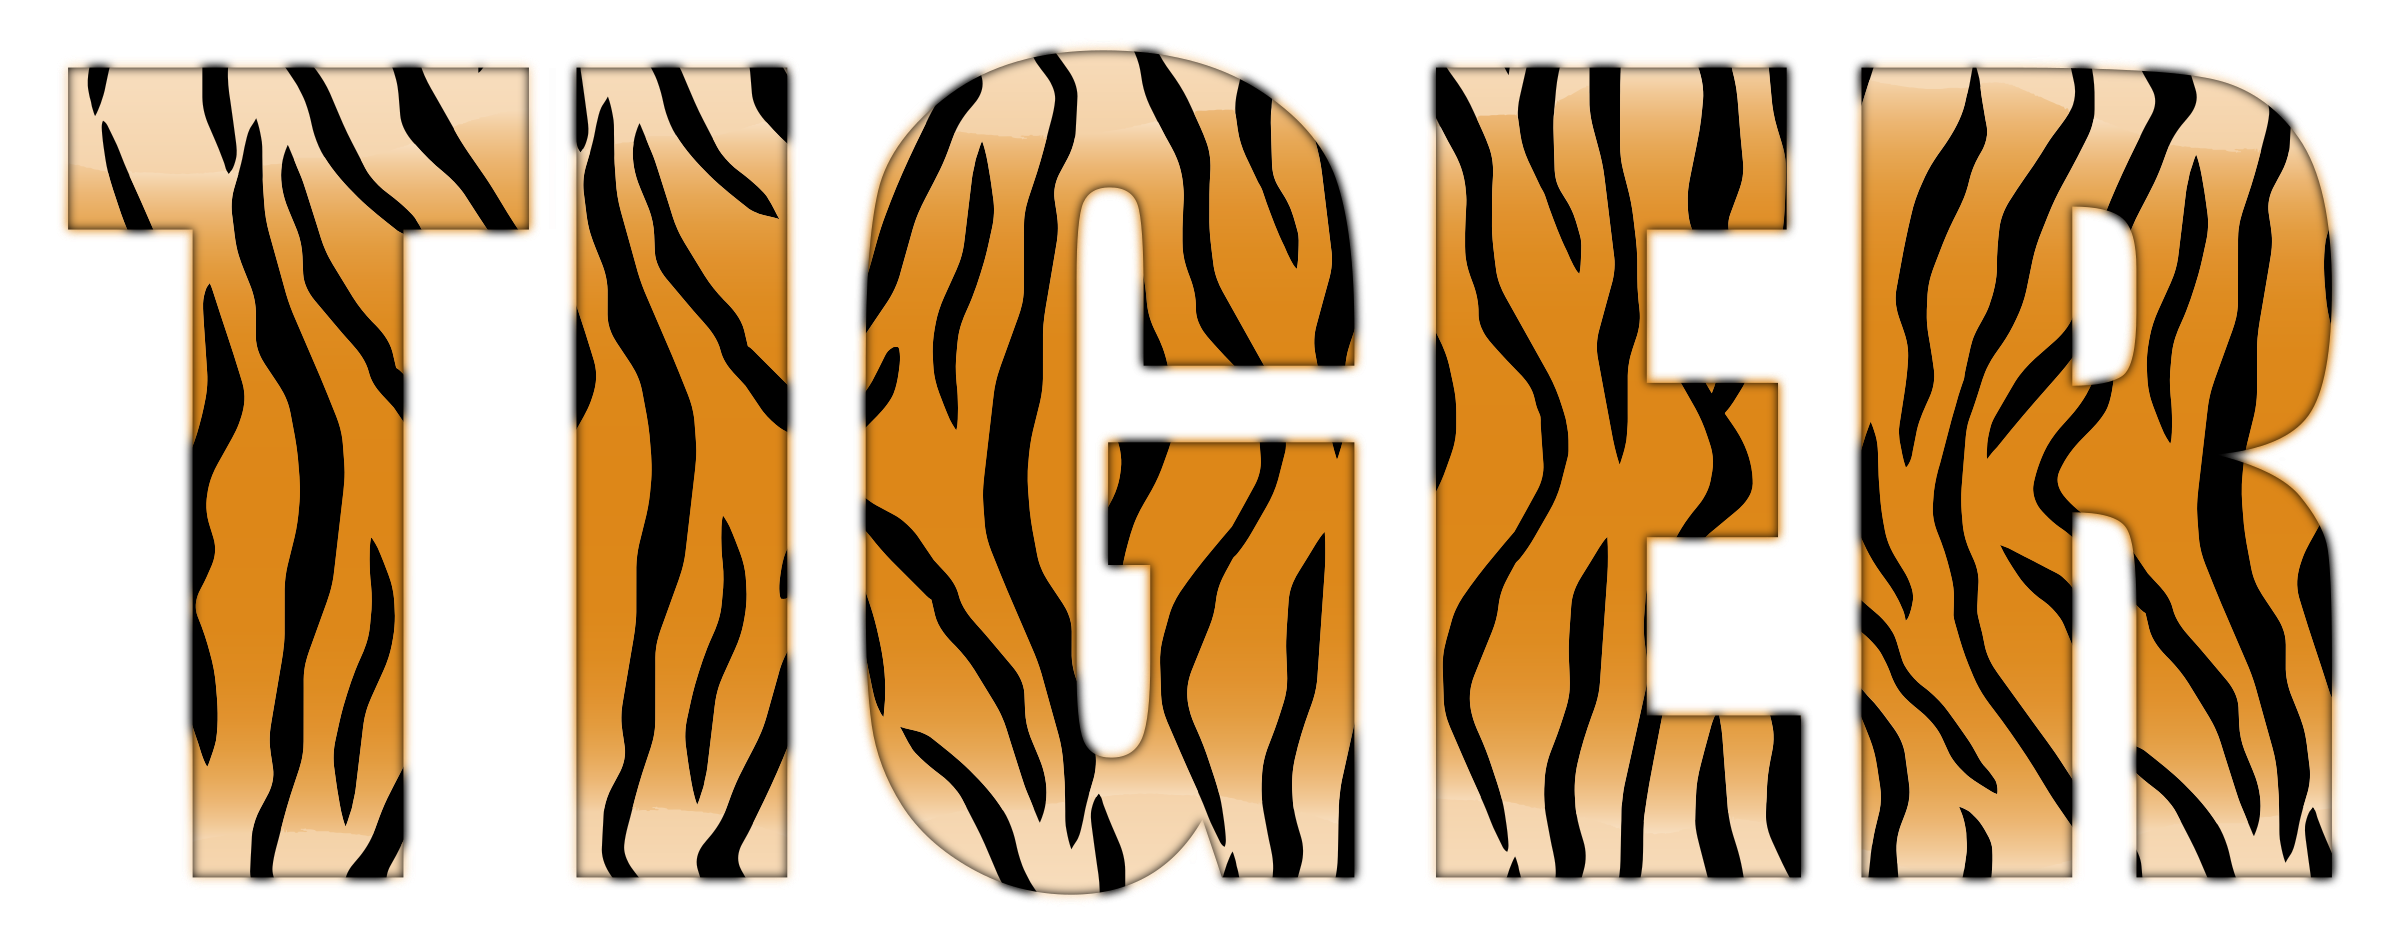 Tiger Typography Enhanced by GDJ